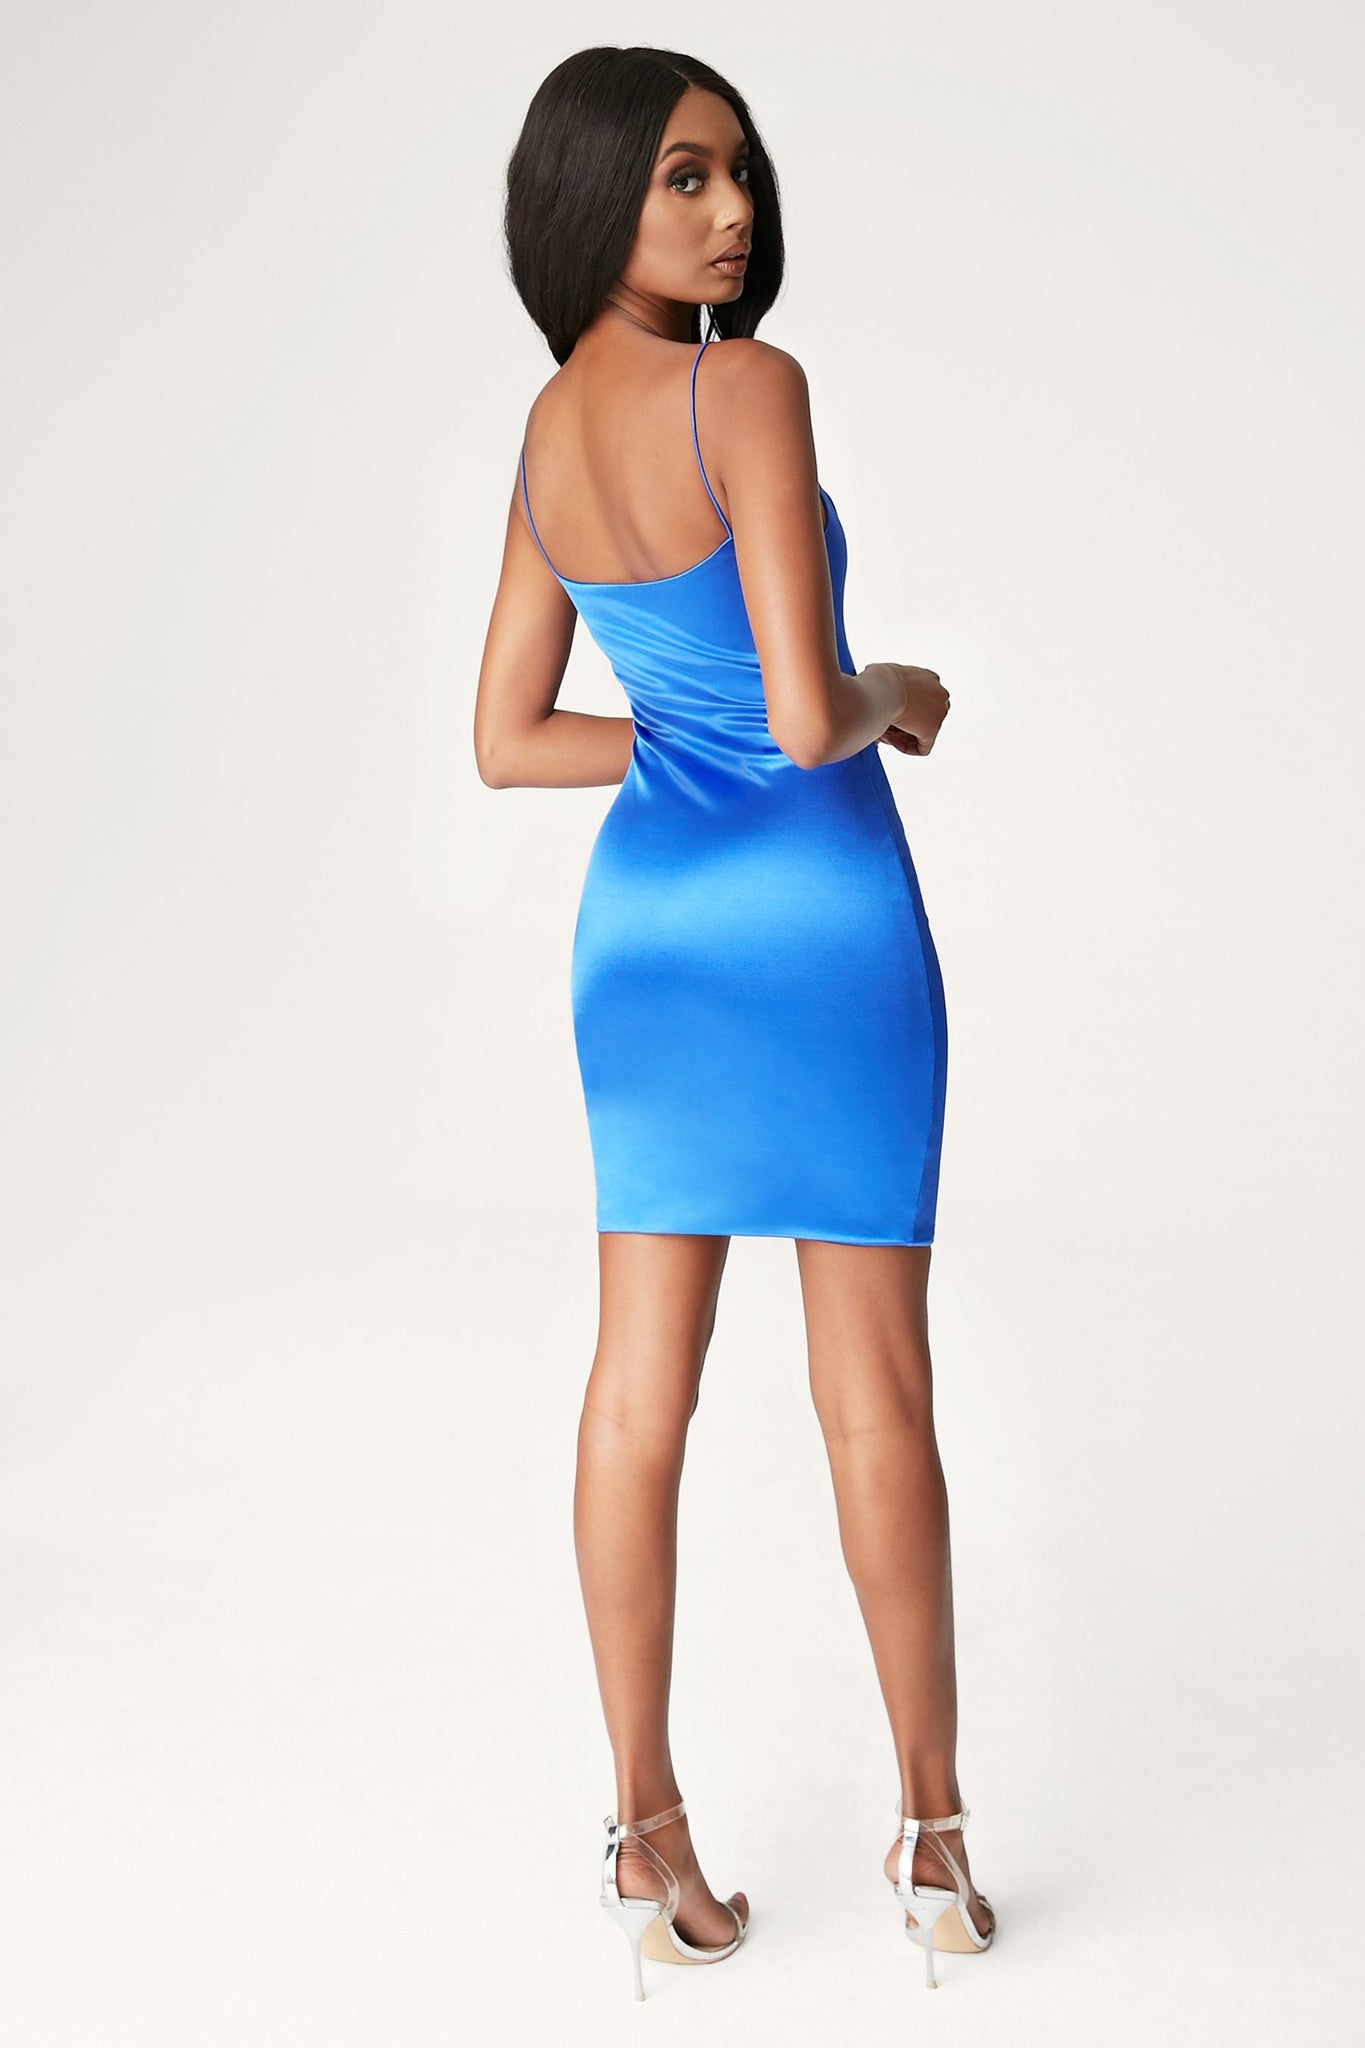 Adrena Thin Strap Mini Dress - Bright Blue - MESHKI